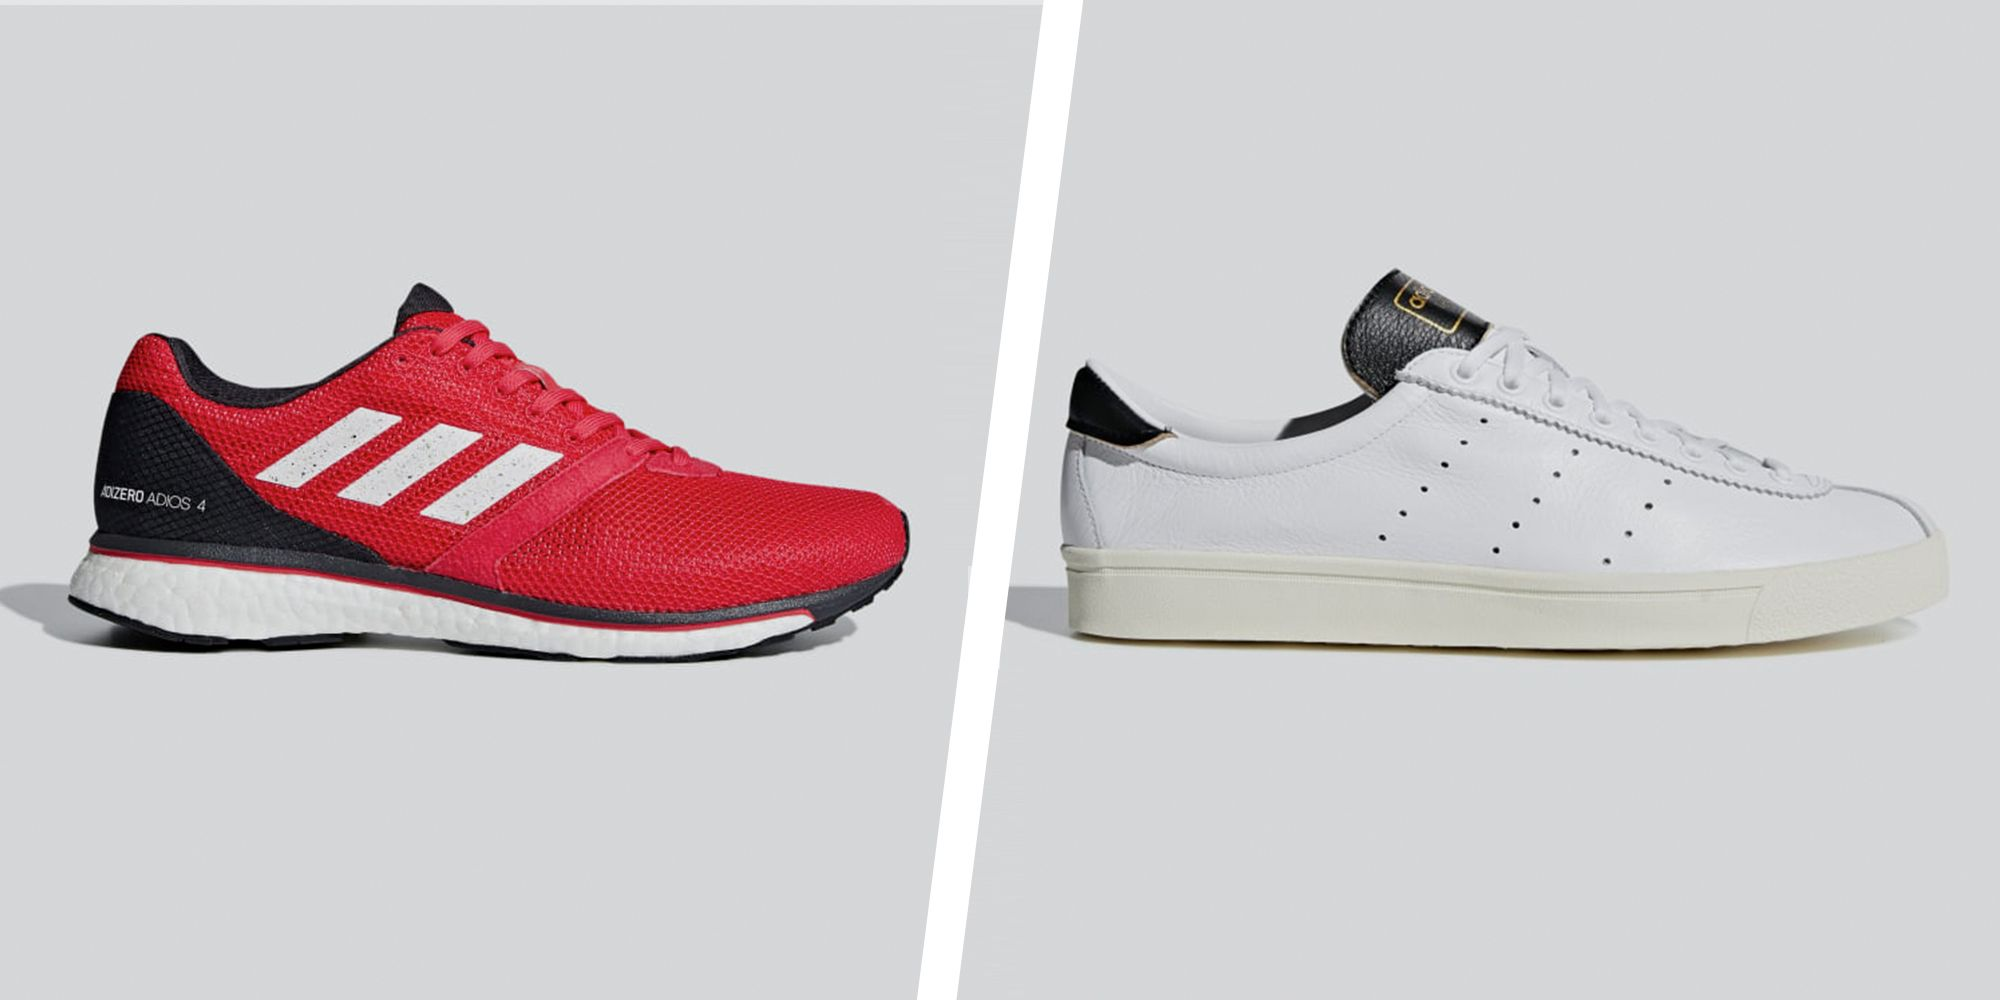 Adidas offers in Lucknow  Running Sale and Discount offers